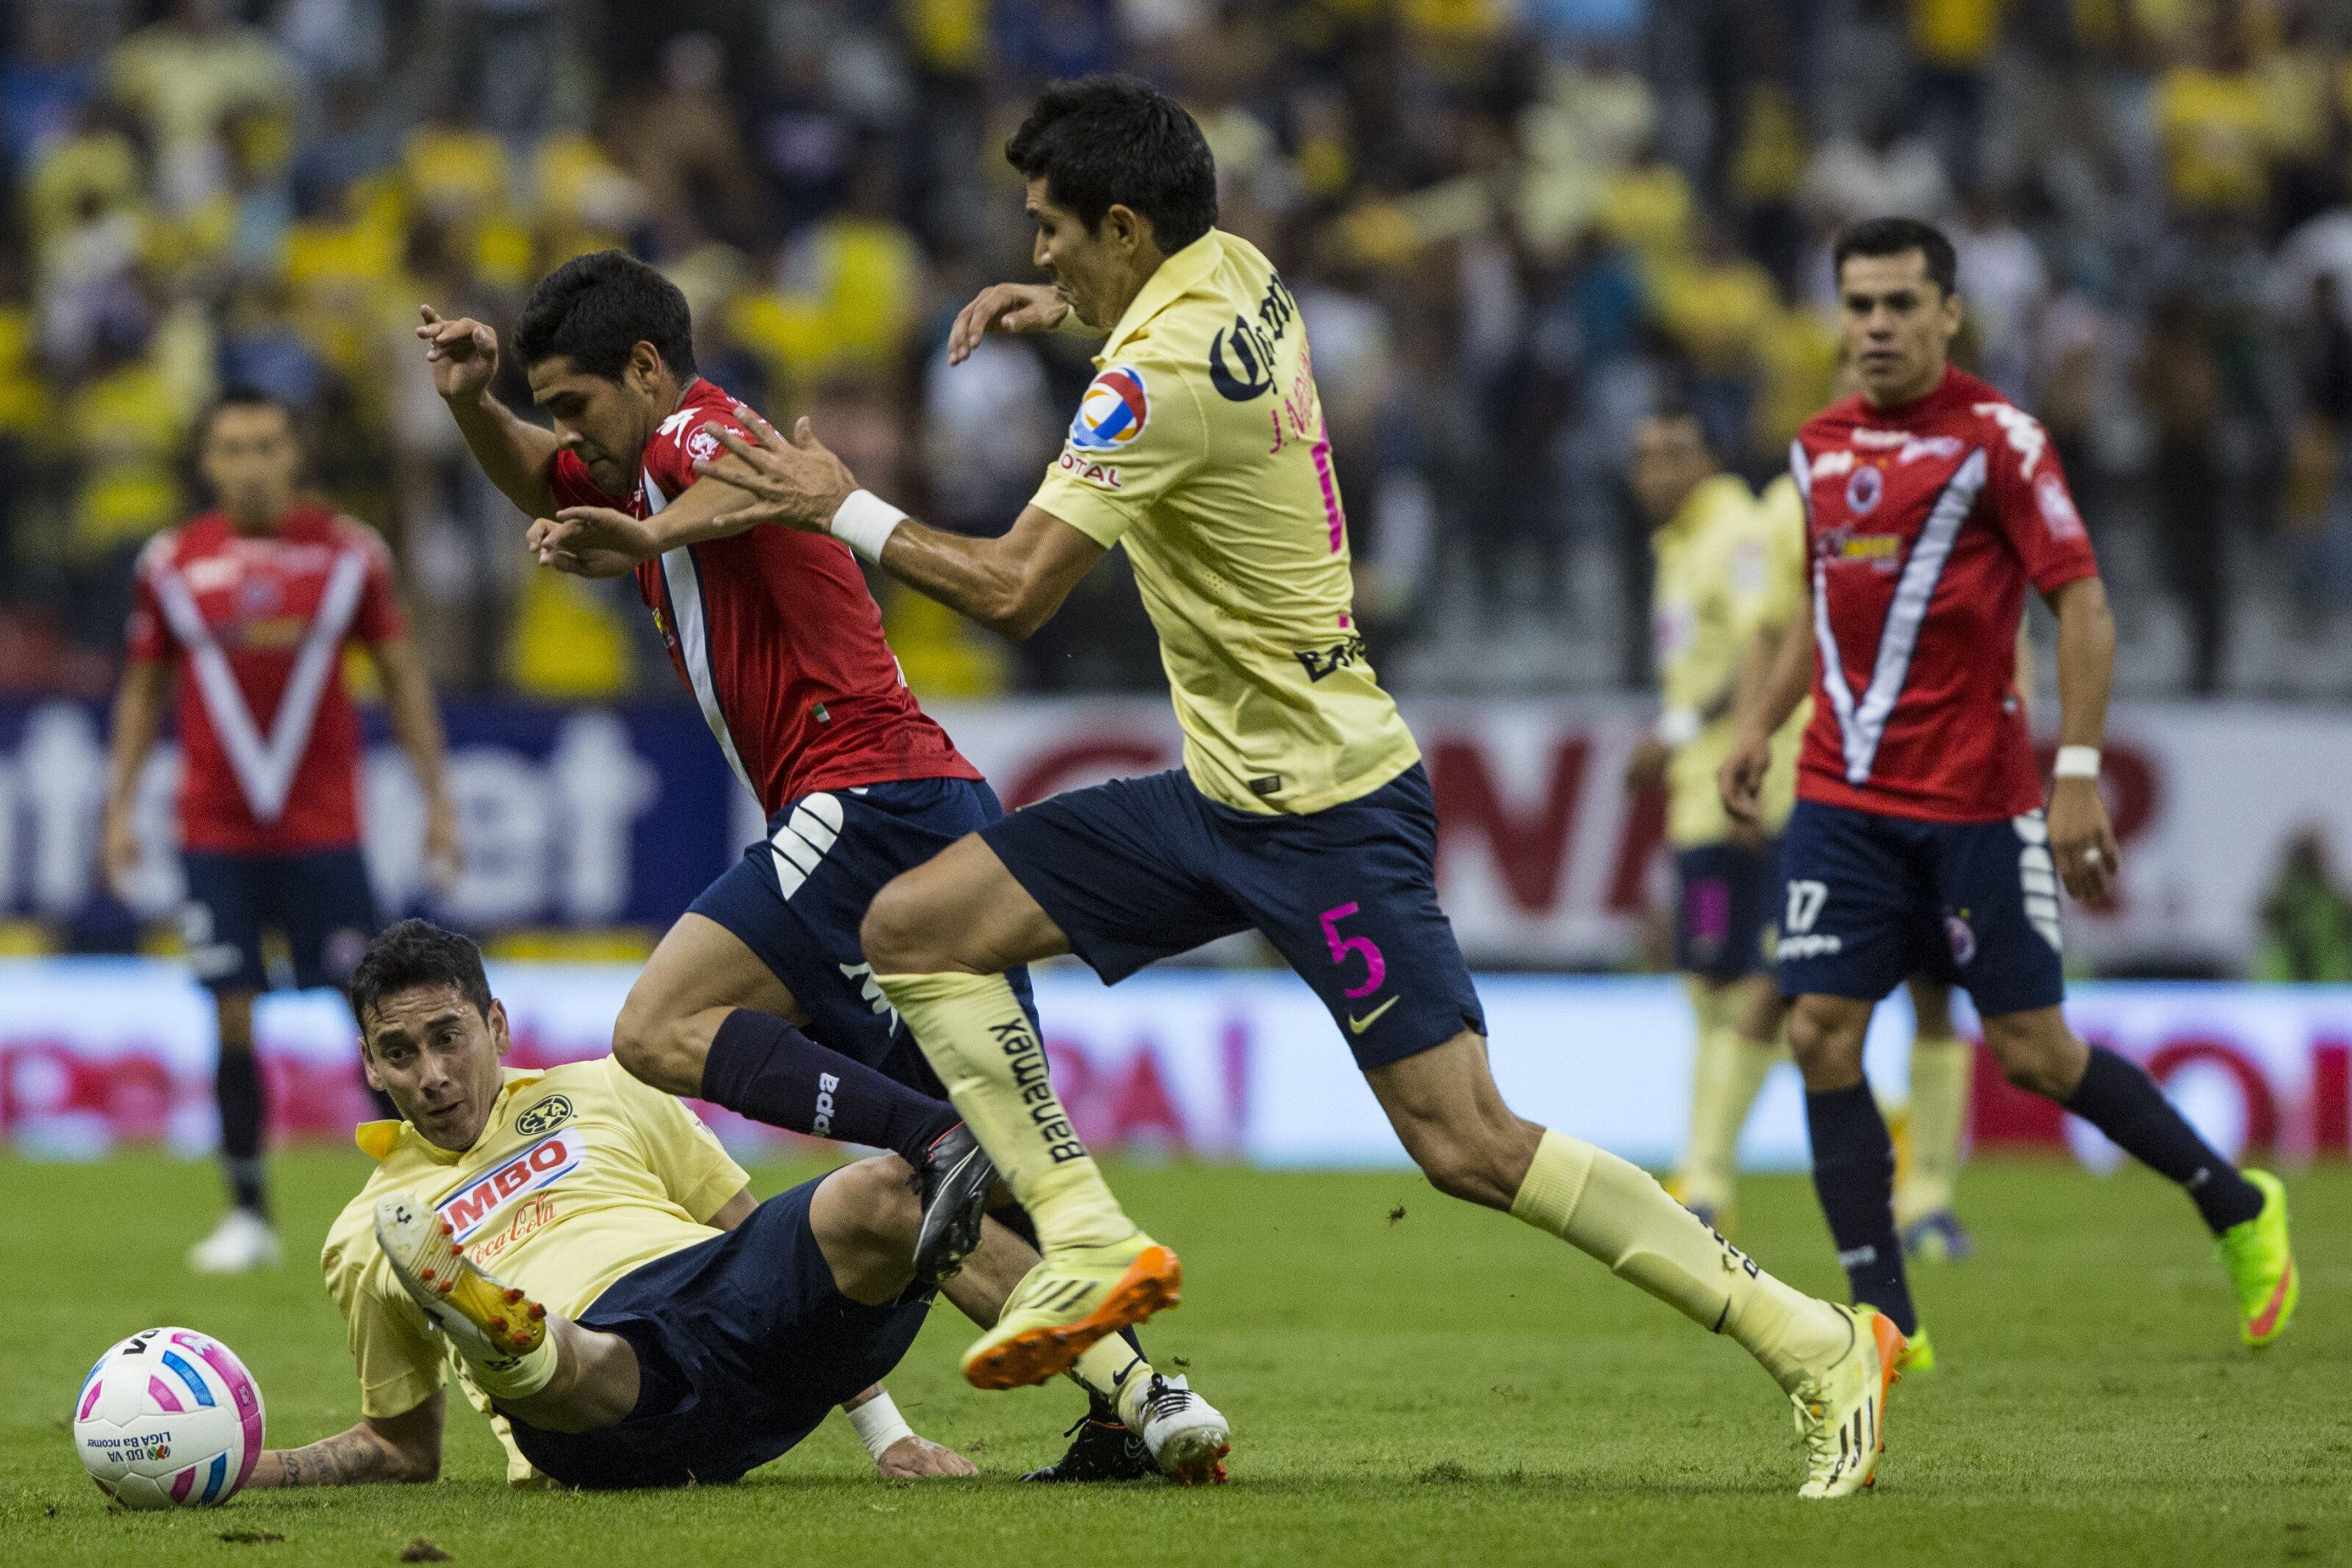 Season in Review: Aguilas fail to soar; Sharks don't swim